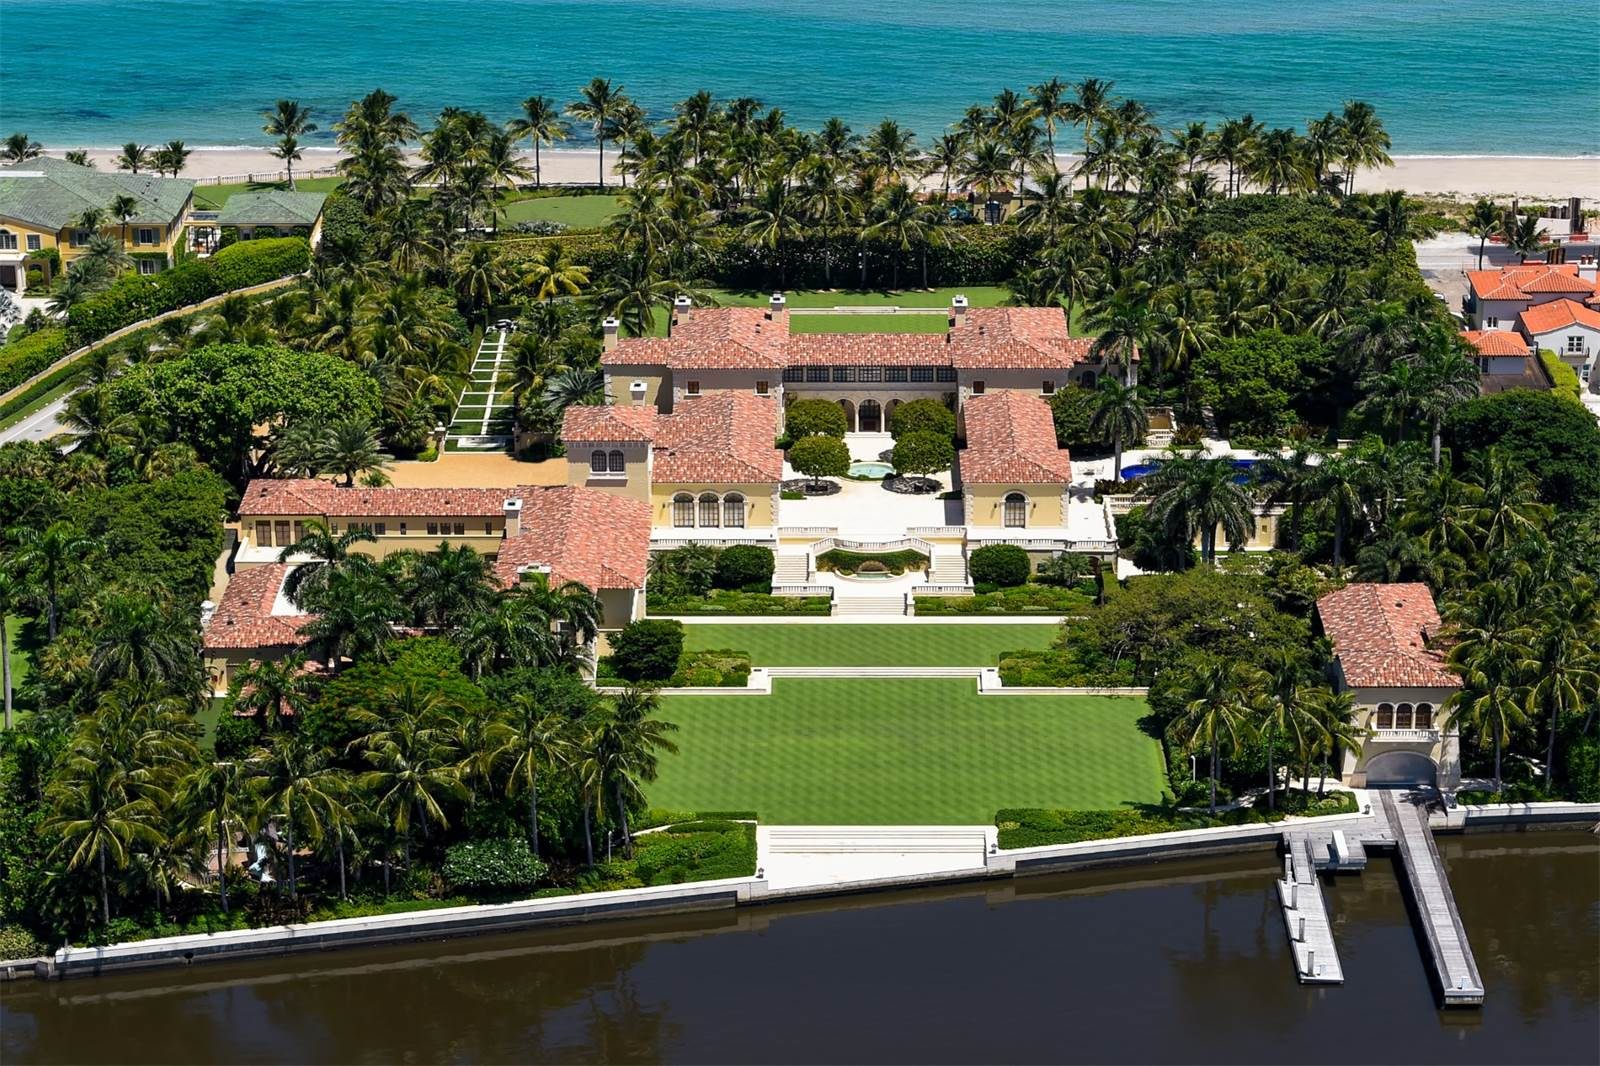 Il Palmetto (Palm Beach, Florida) - 129 milioni di euro